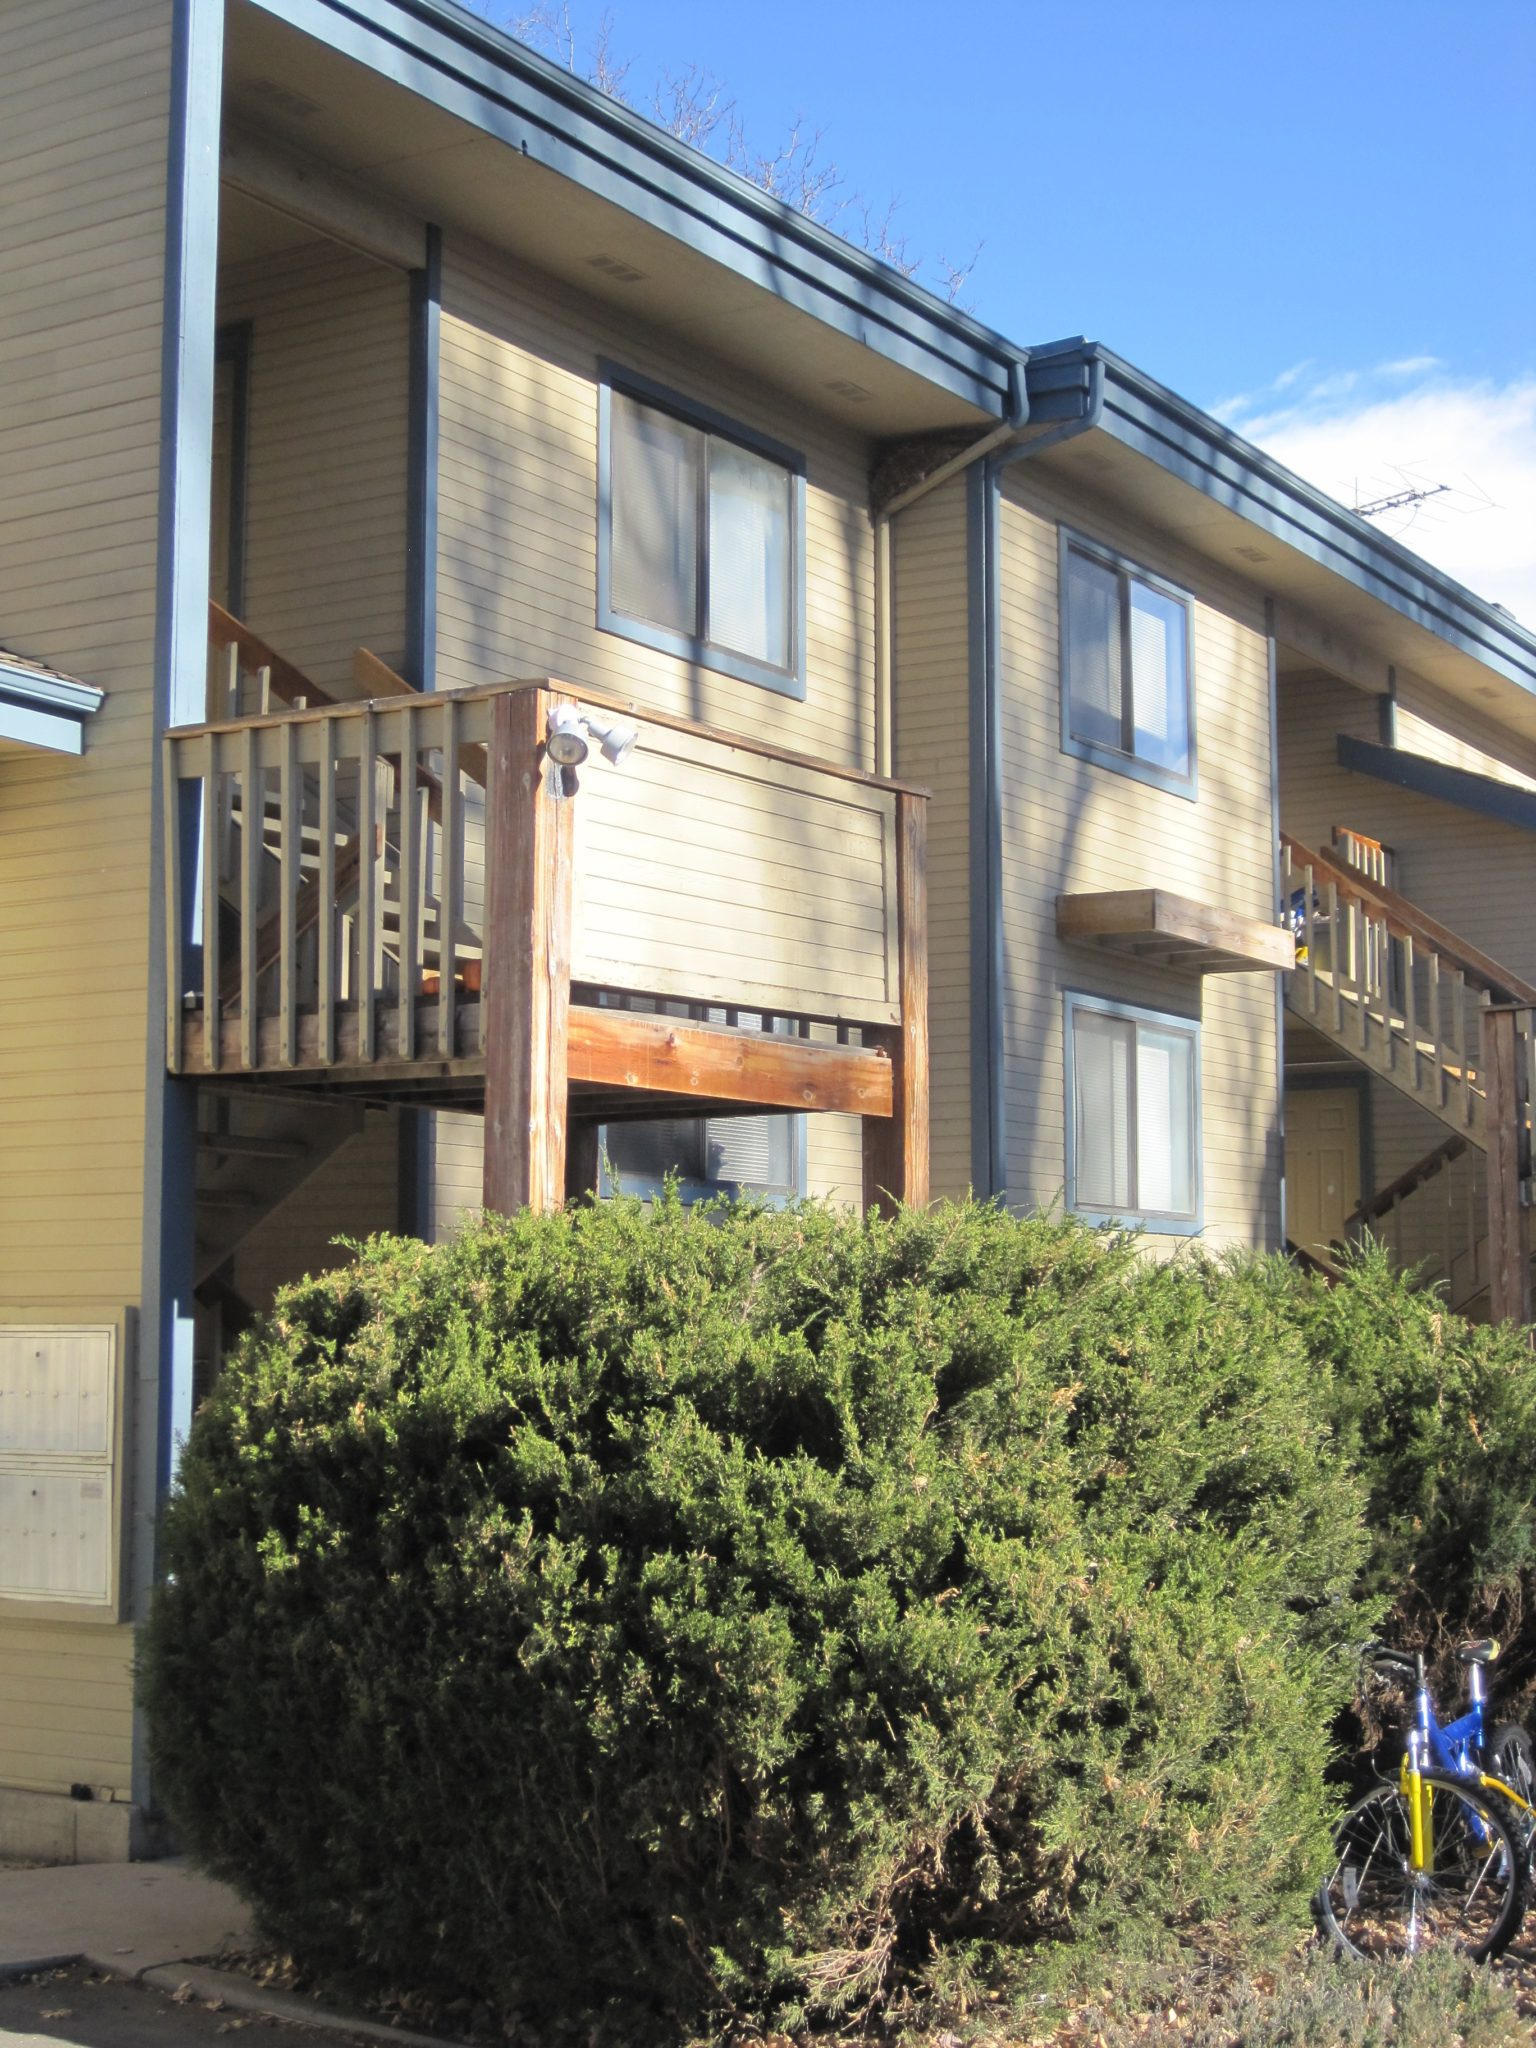 602 S. Whitcomb St. #201, Ft. Collins, CO 80521